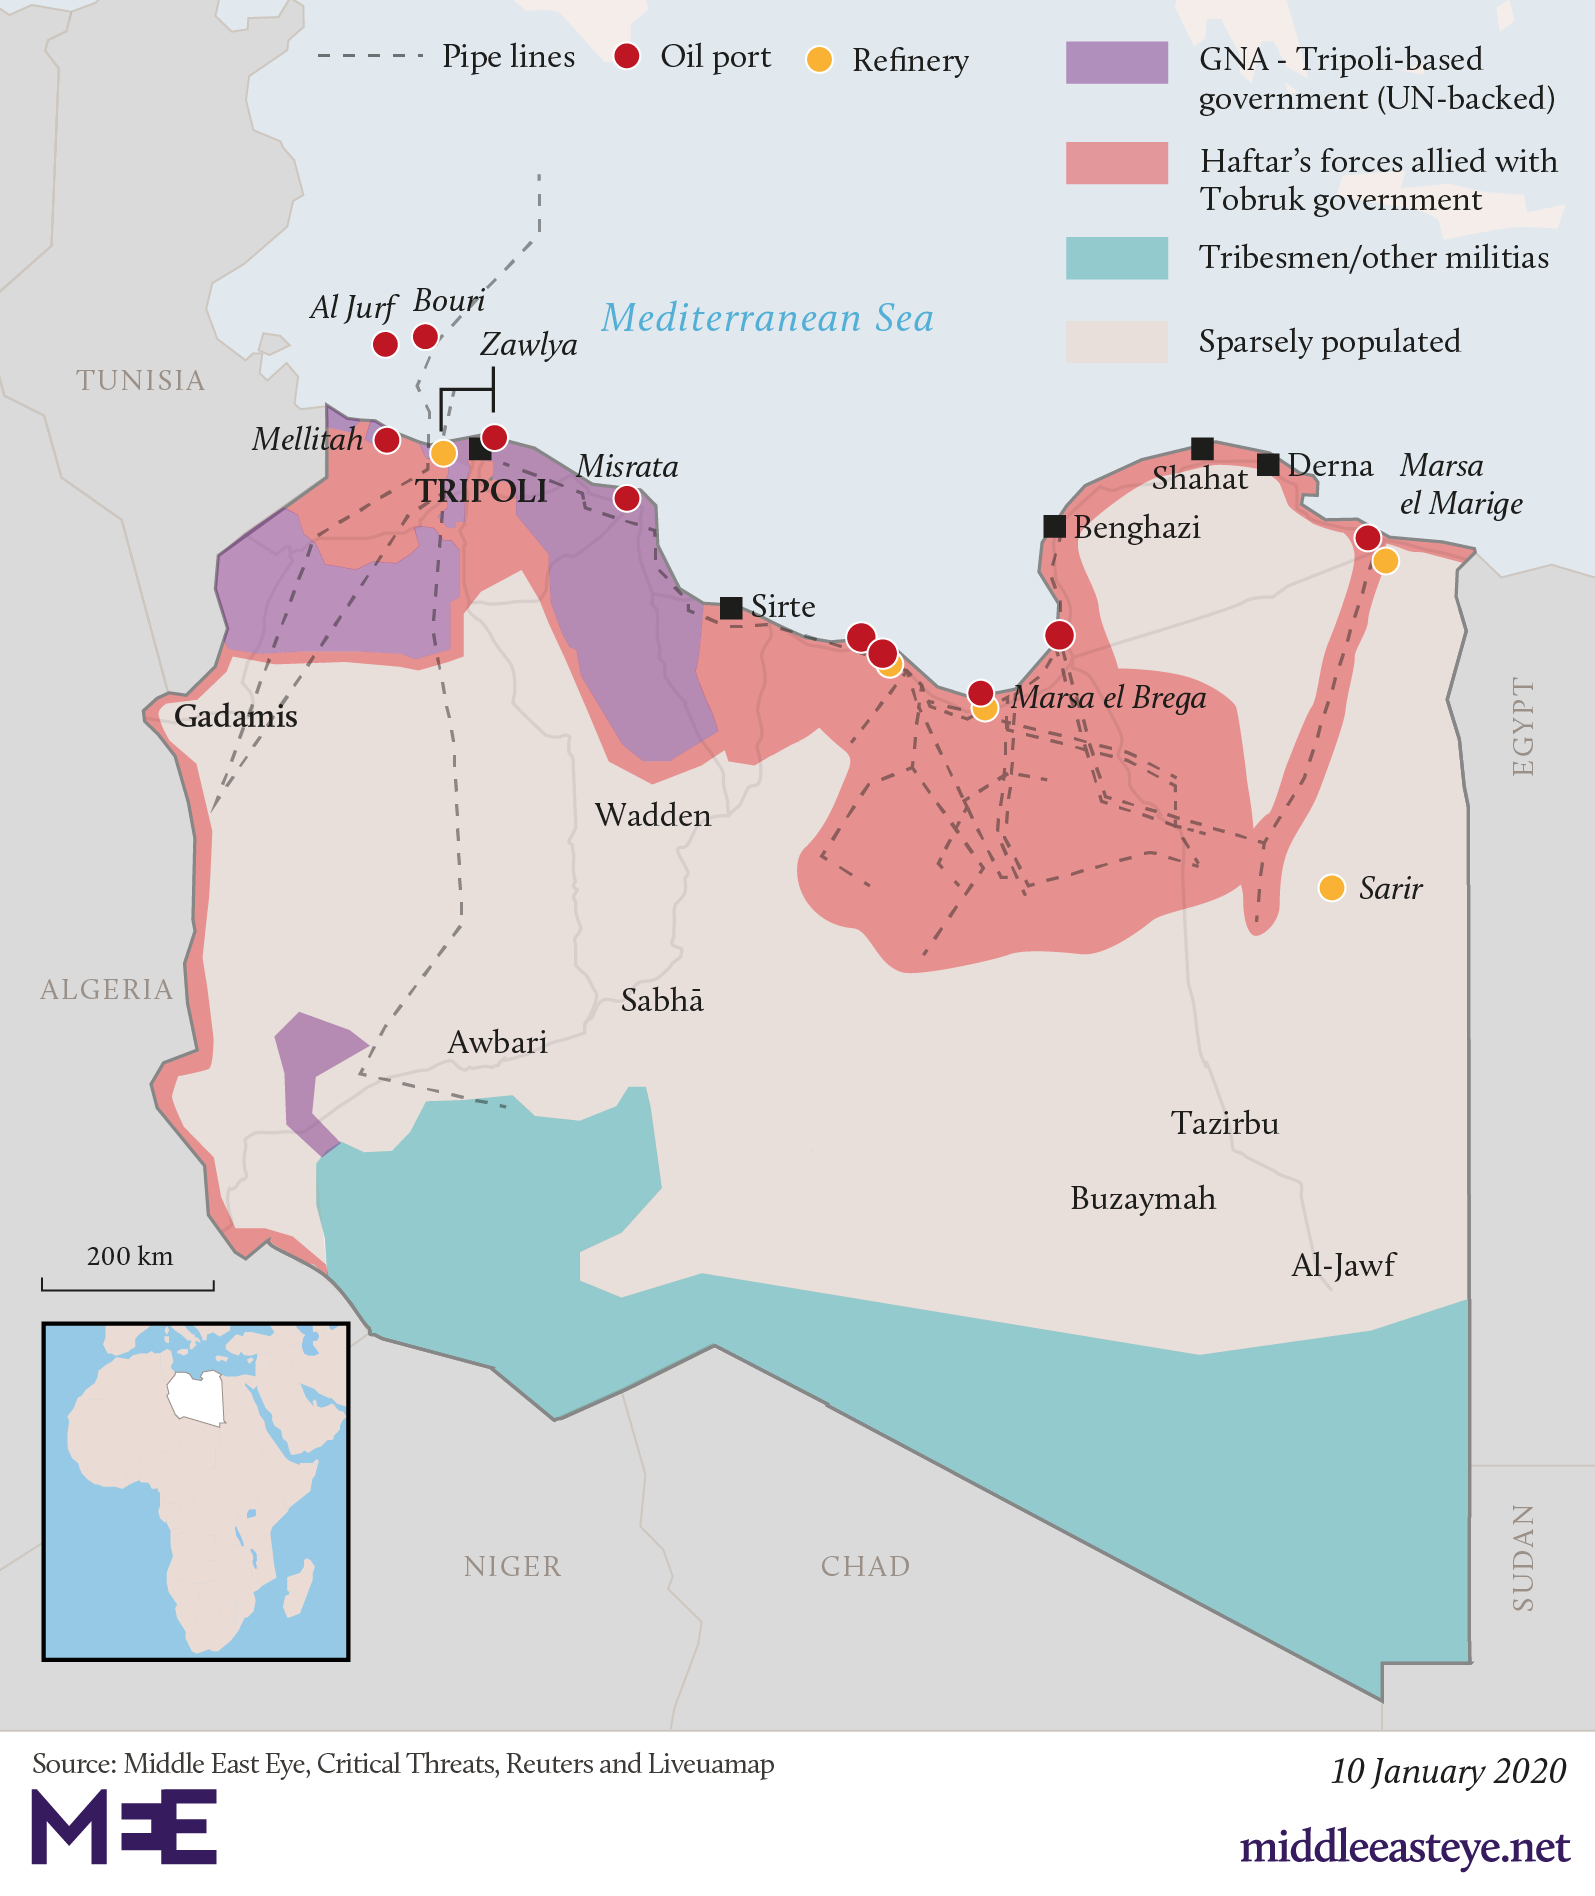 Libya: Who controls what